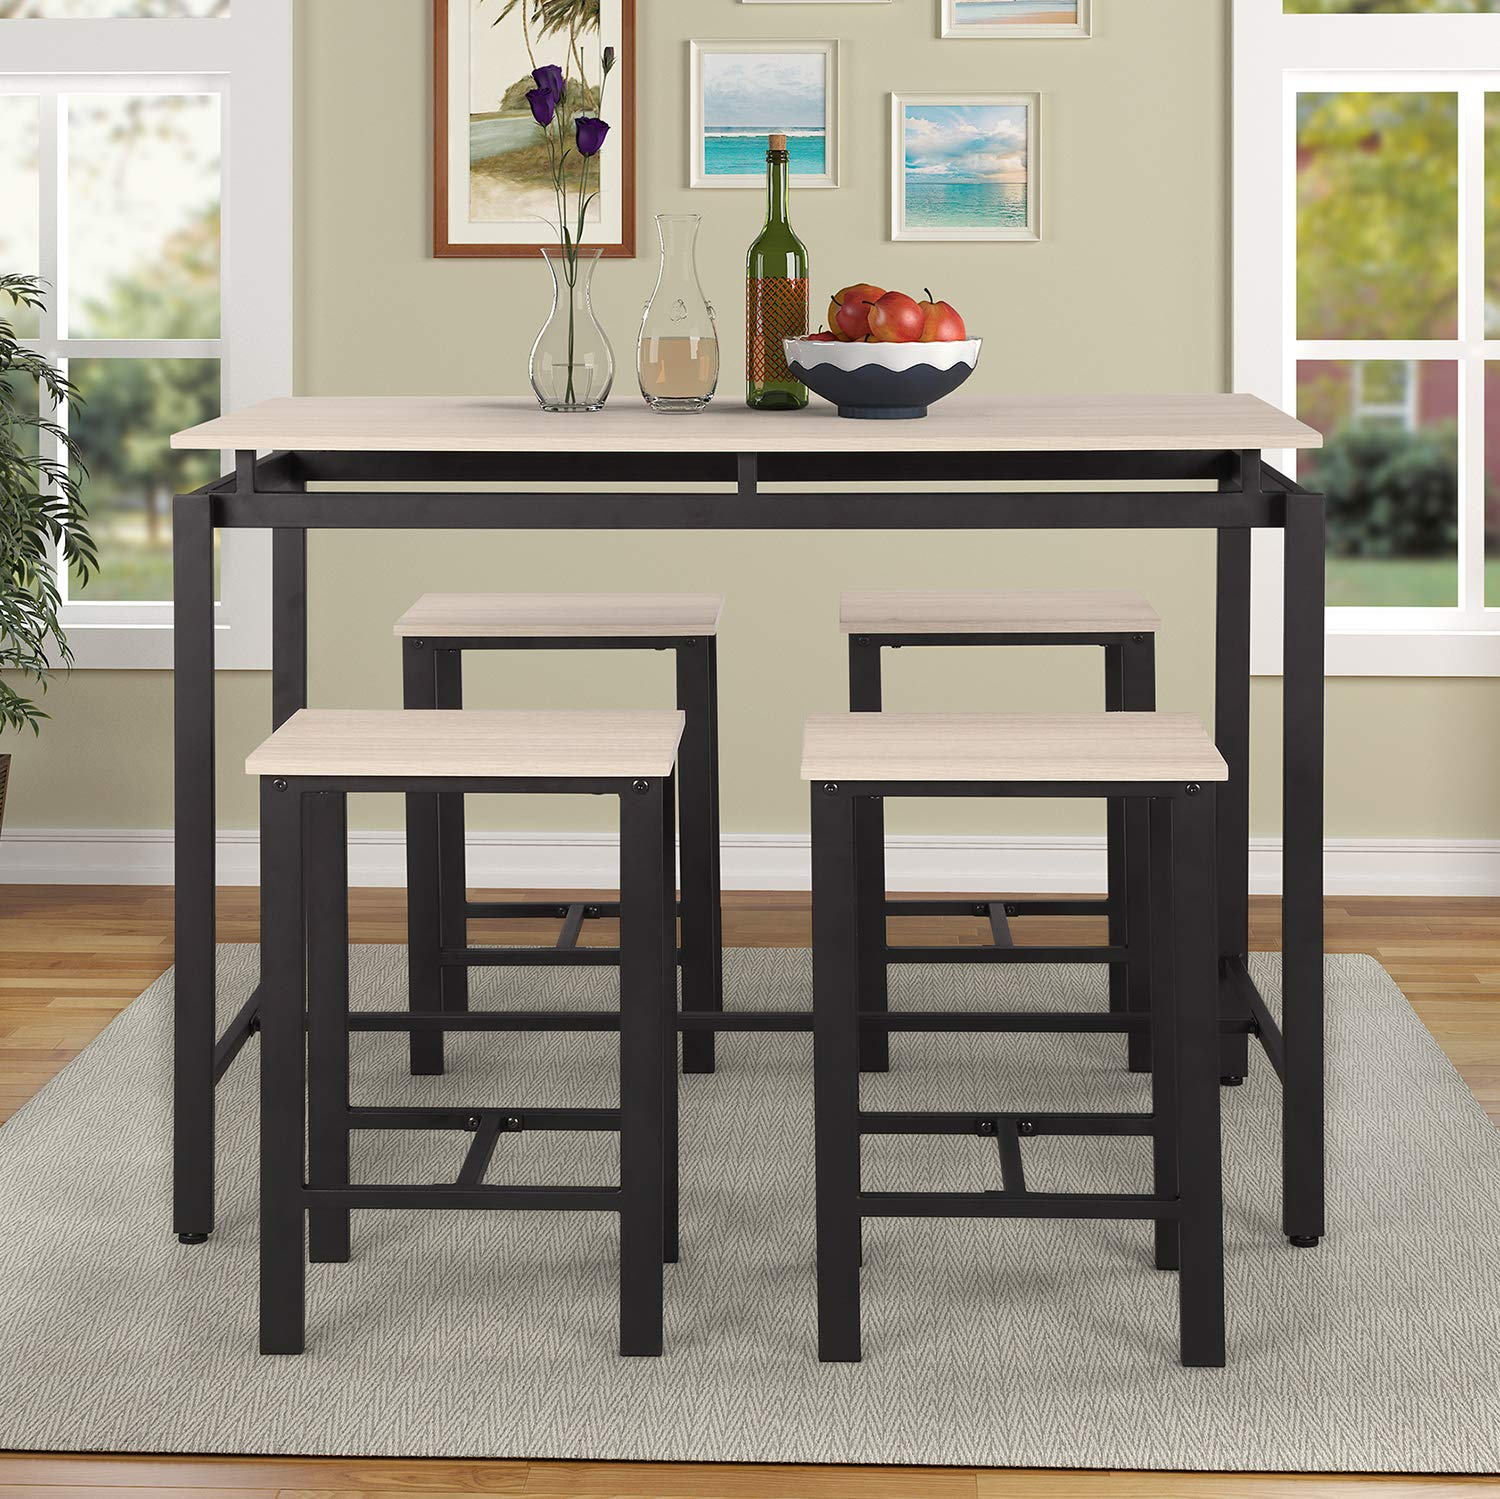 P PURLOVE 5Pcs Dining Table Set Modern Style Wooden Kitchen Table and 4 Chairs with Metal Legs, Beige